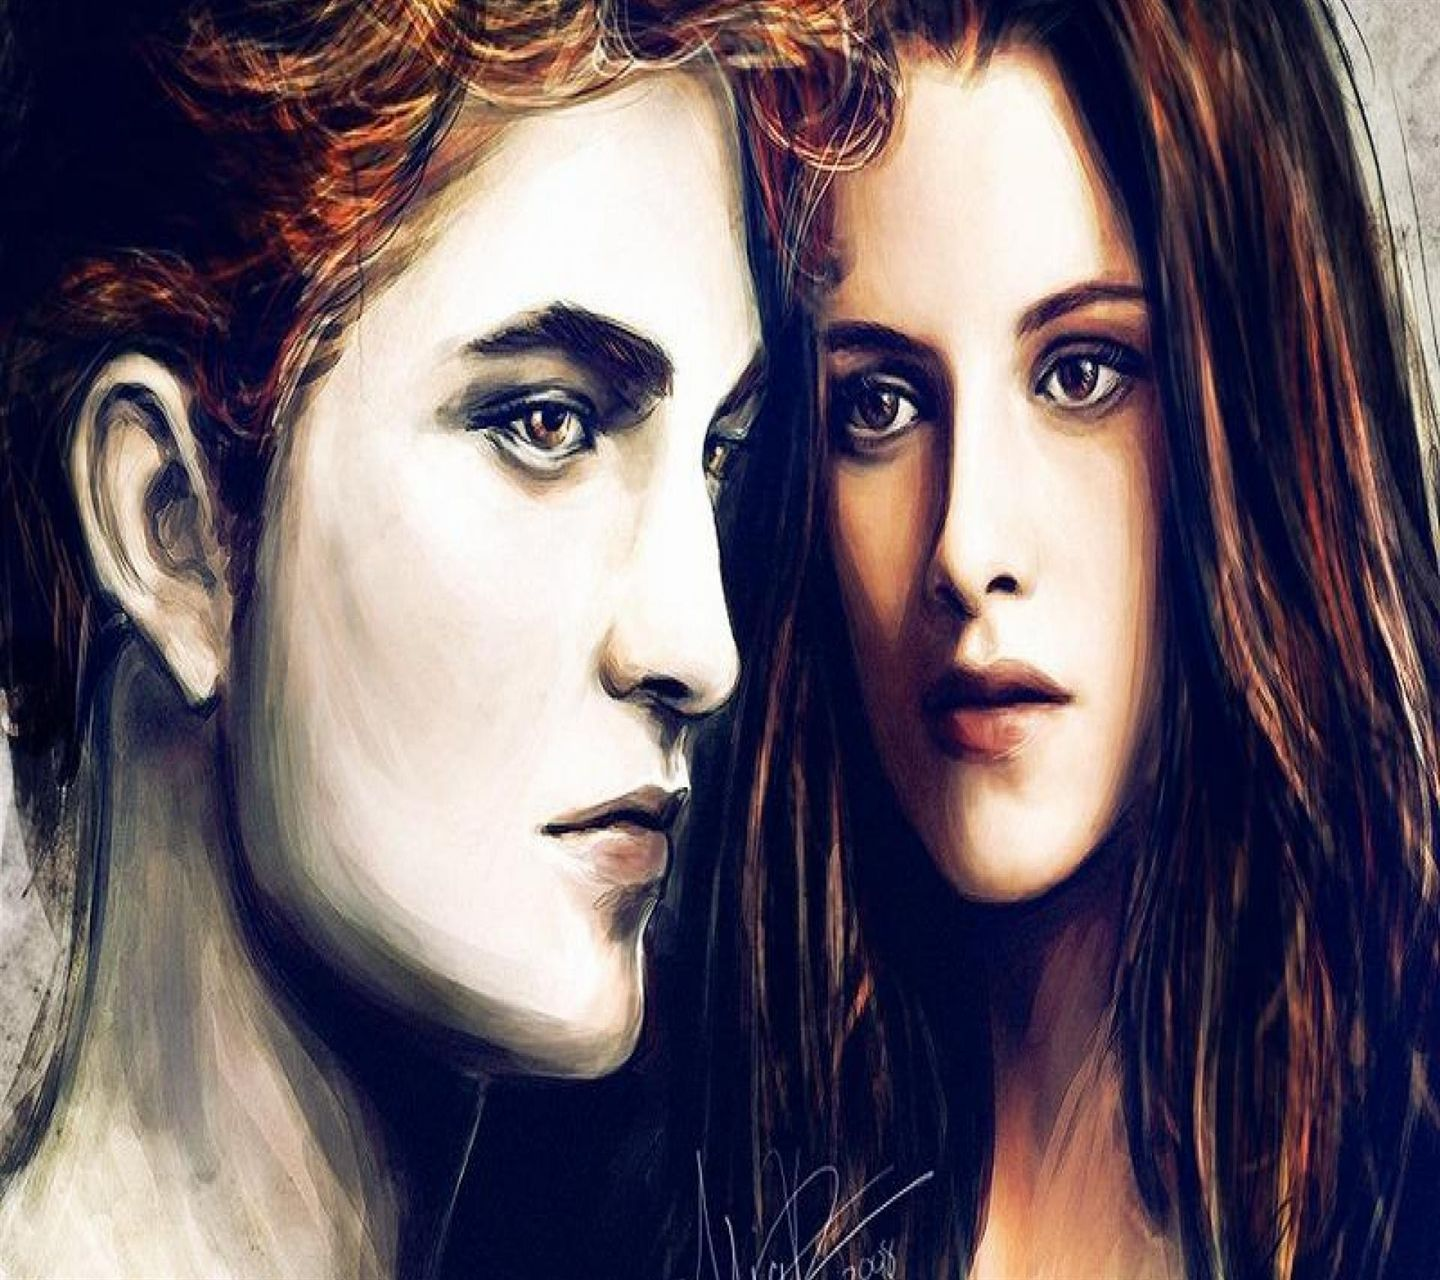 download free entertainment wallpaper twilight to your mobile phone